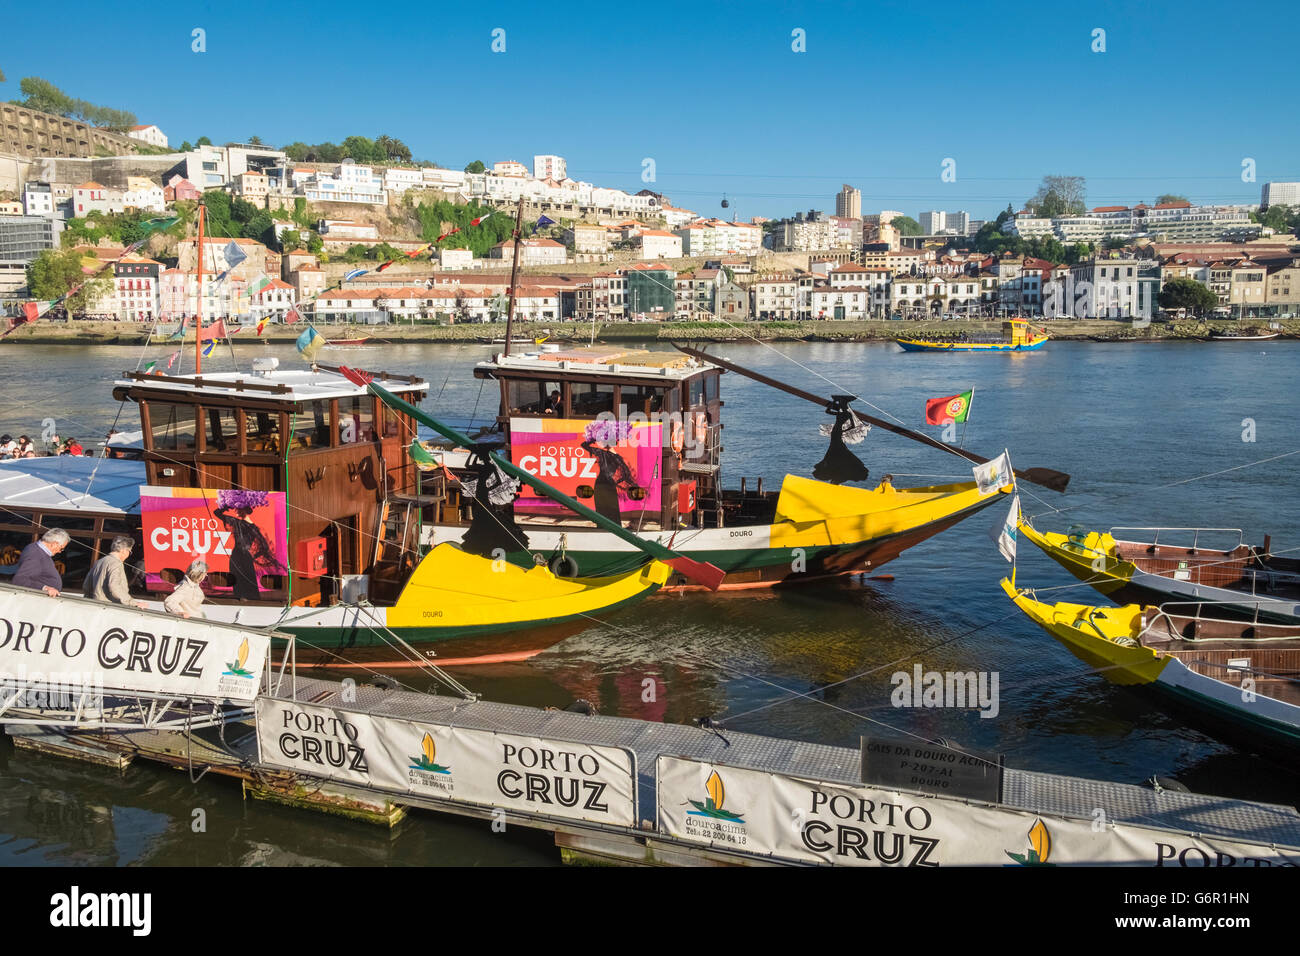 Adapted Rabelo boats used for tourist travel along the Douro river, Porto, Portugal Stock Photo